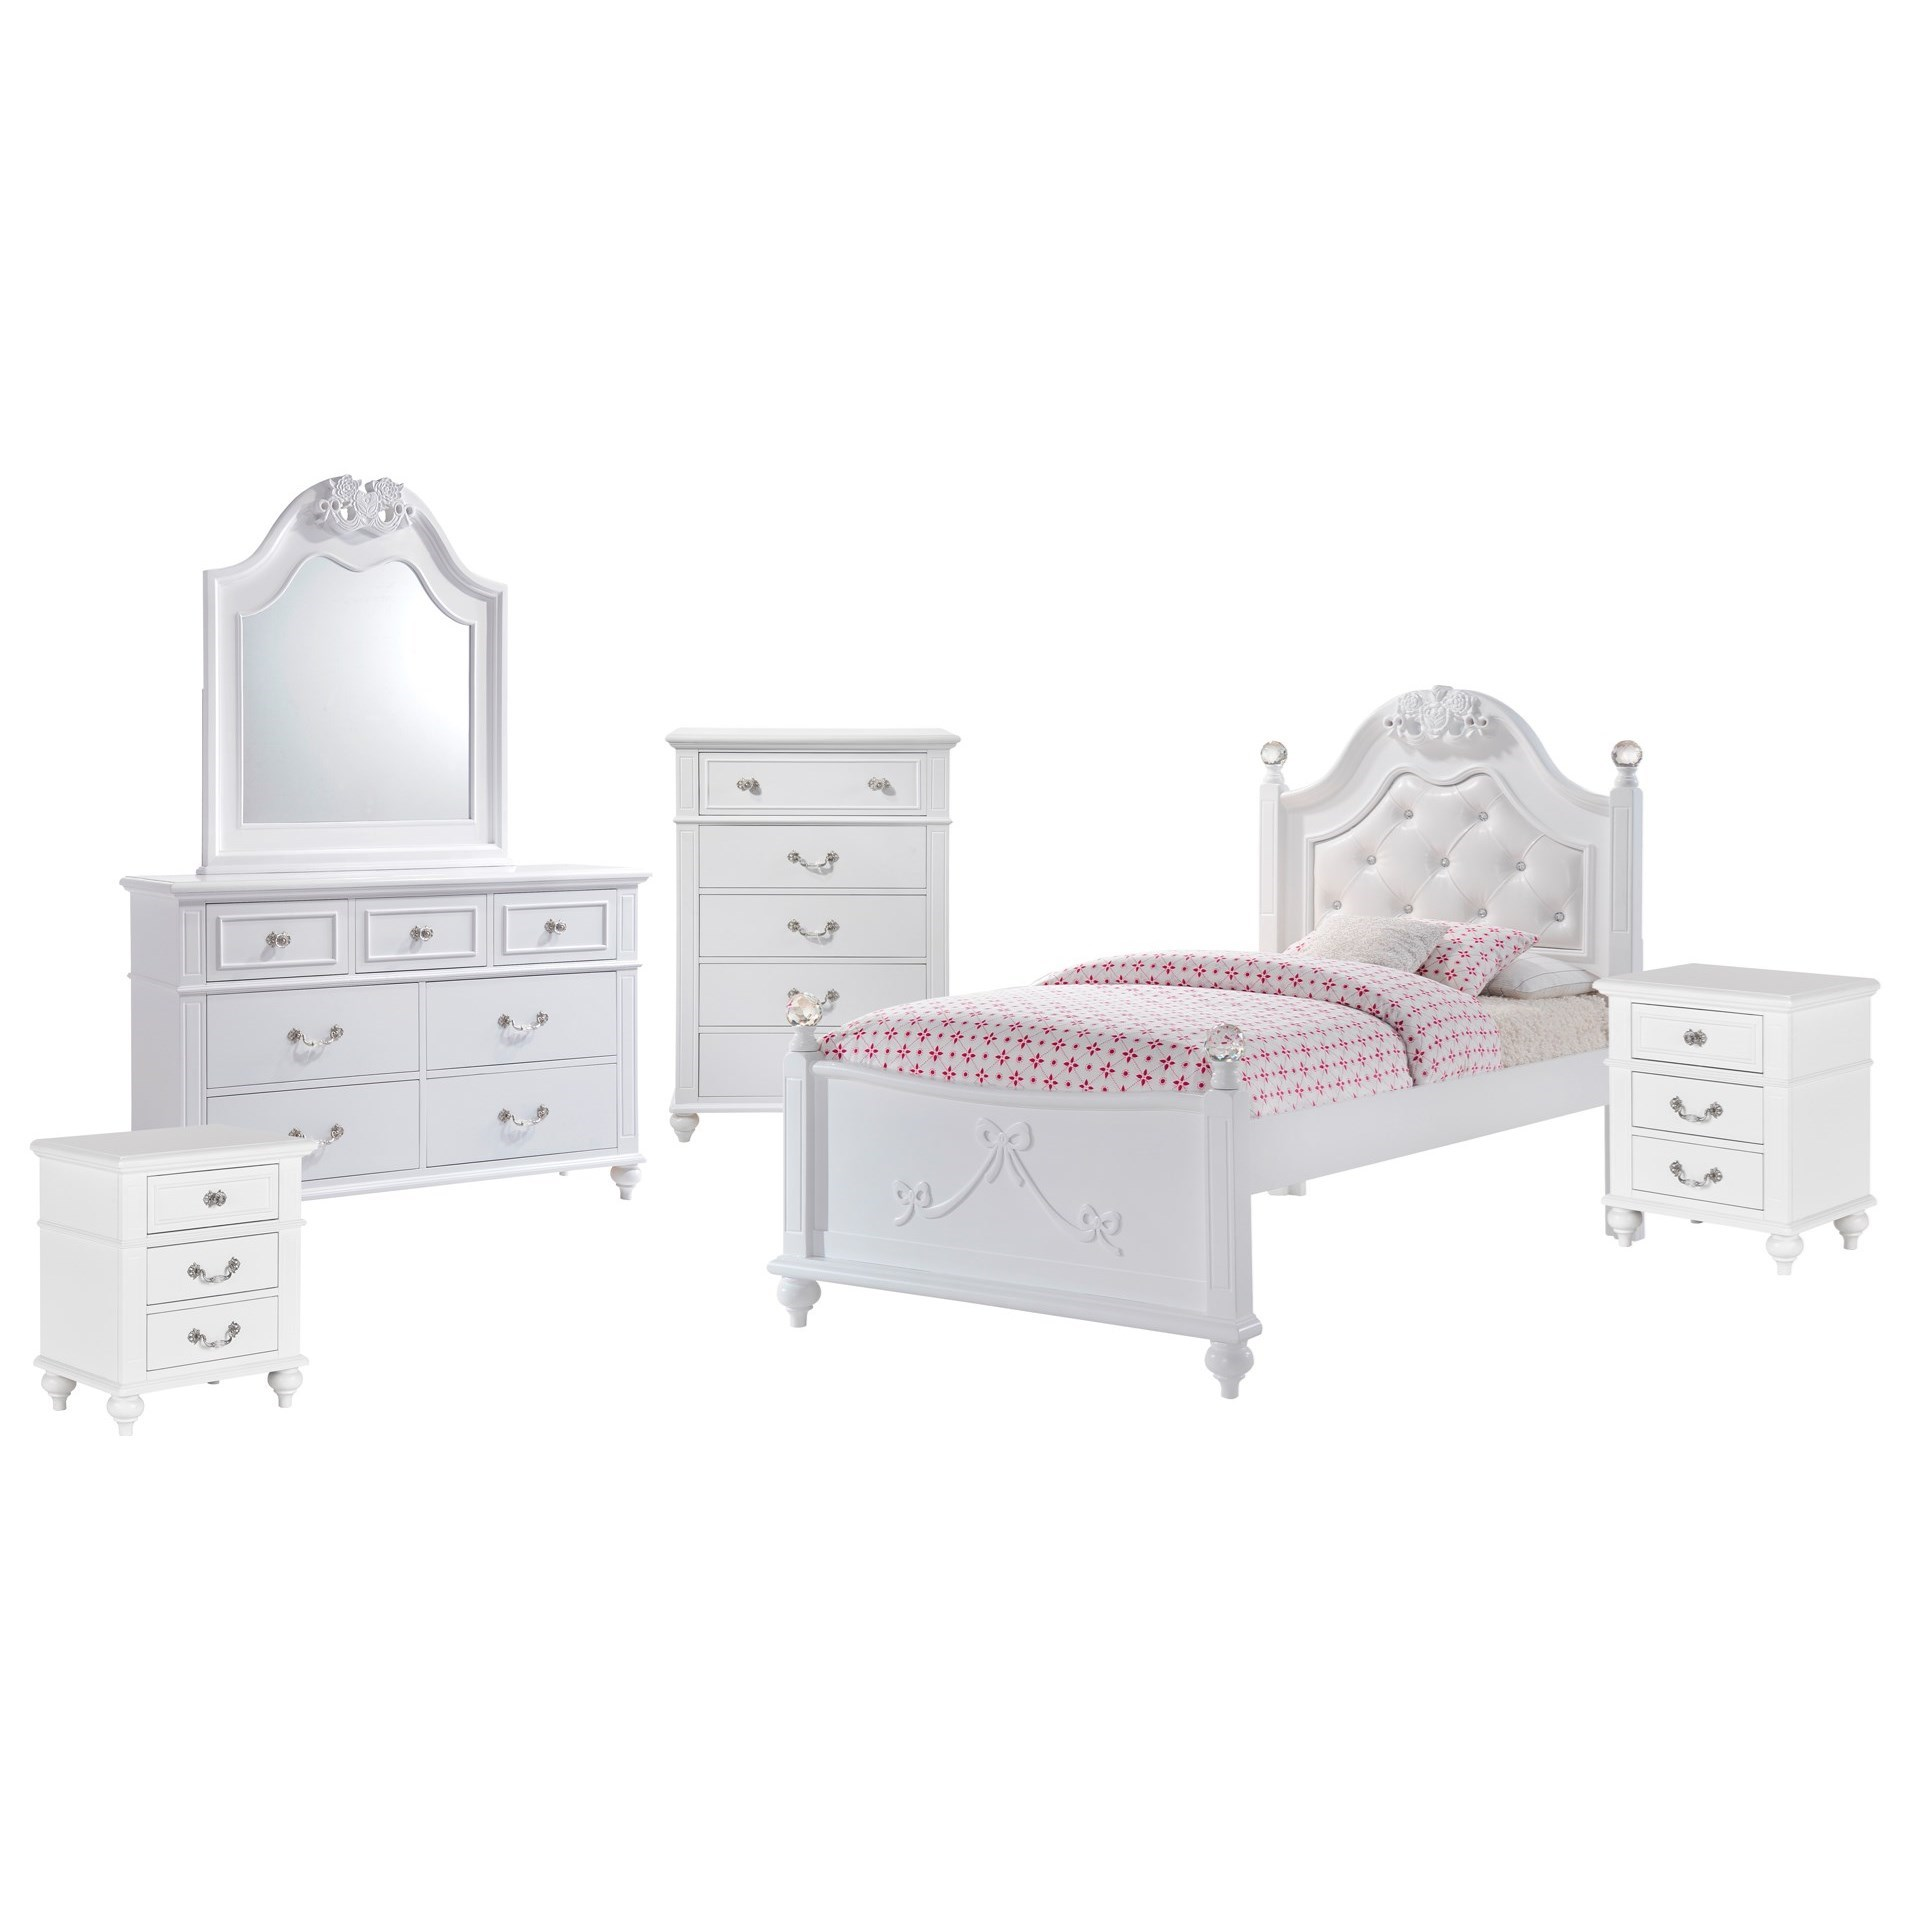 Twin 6-Piece Bedroom Set